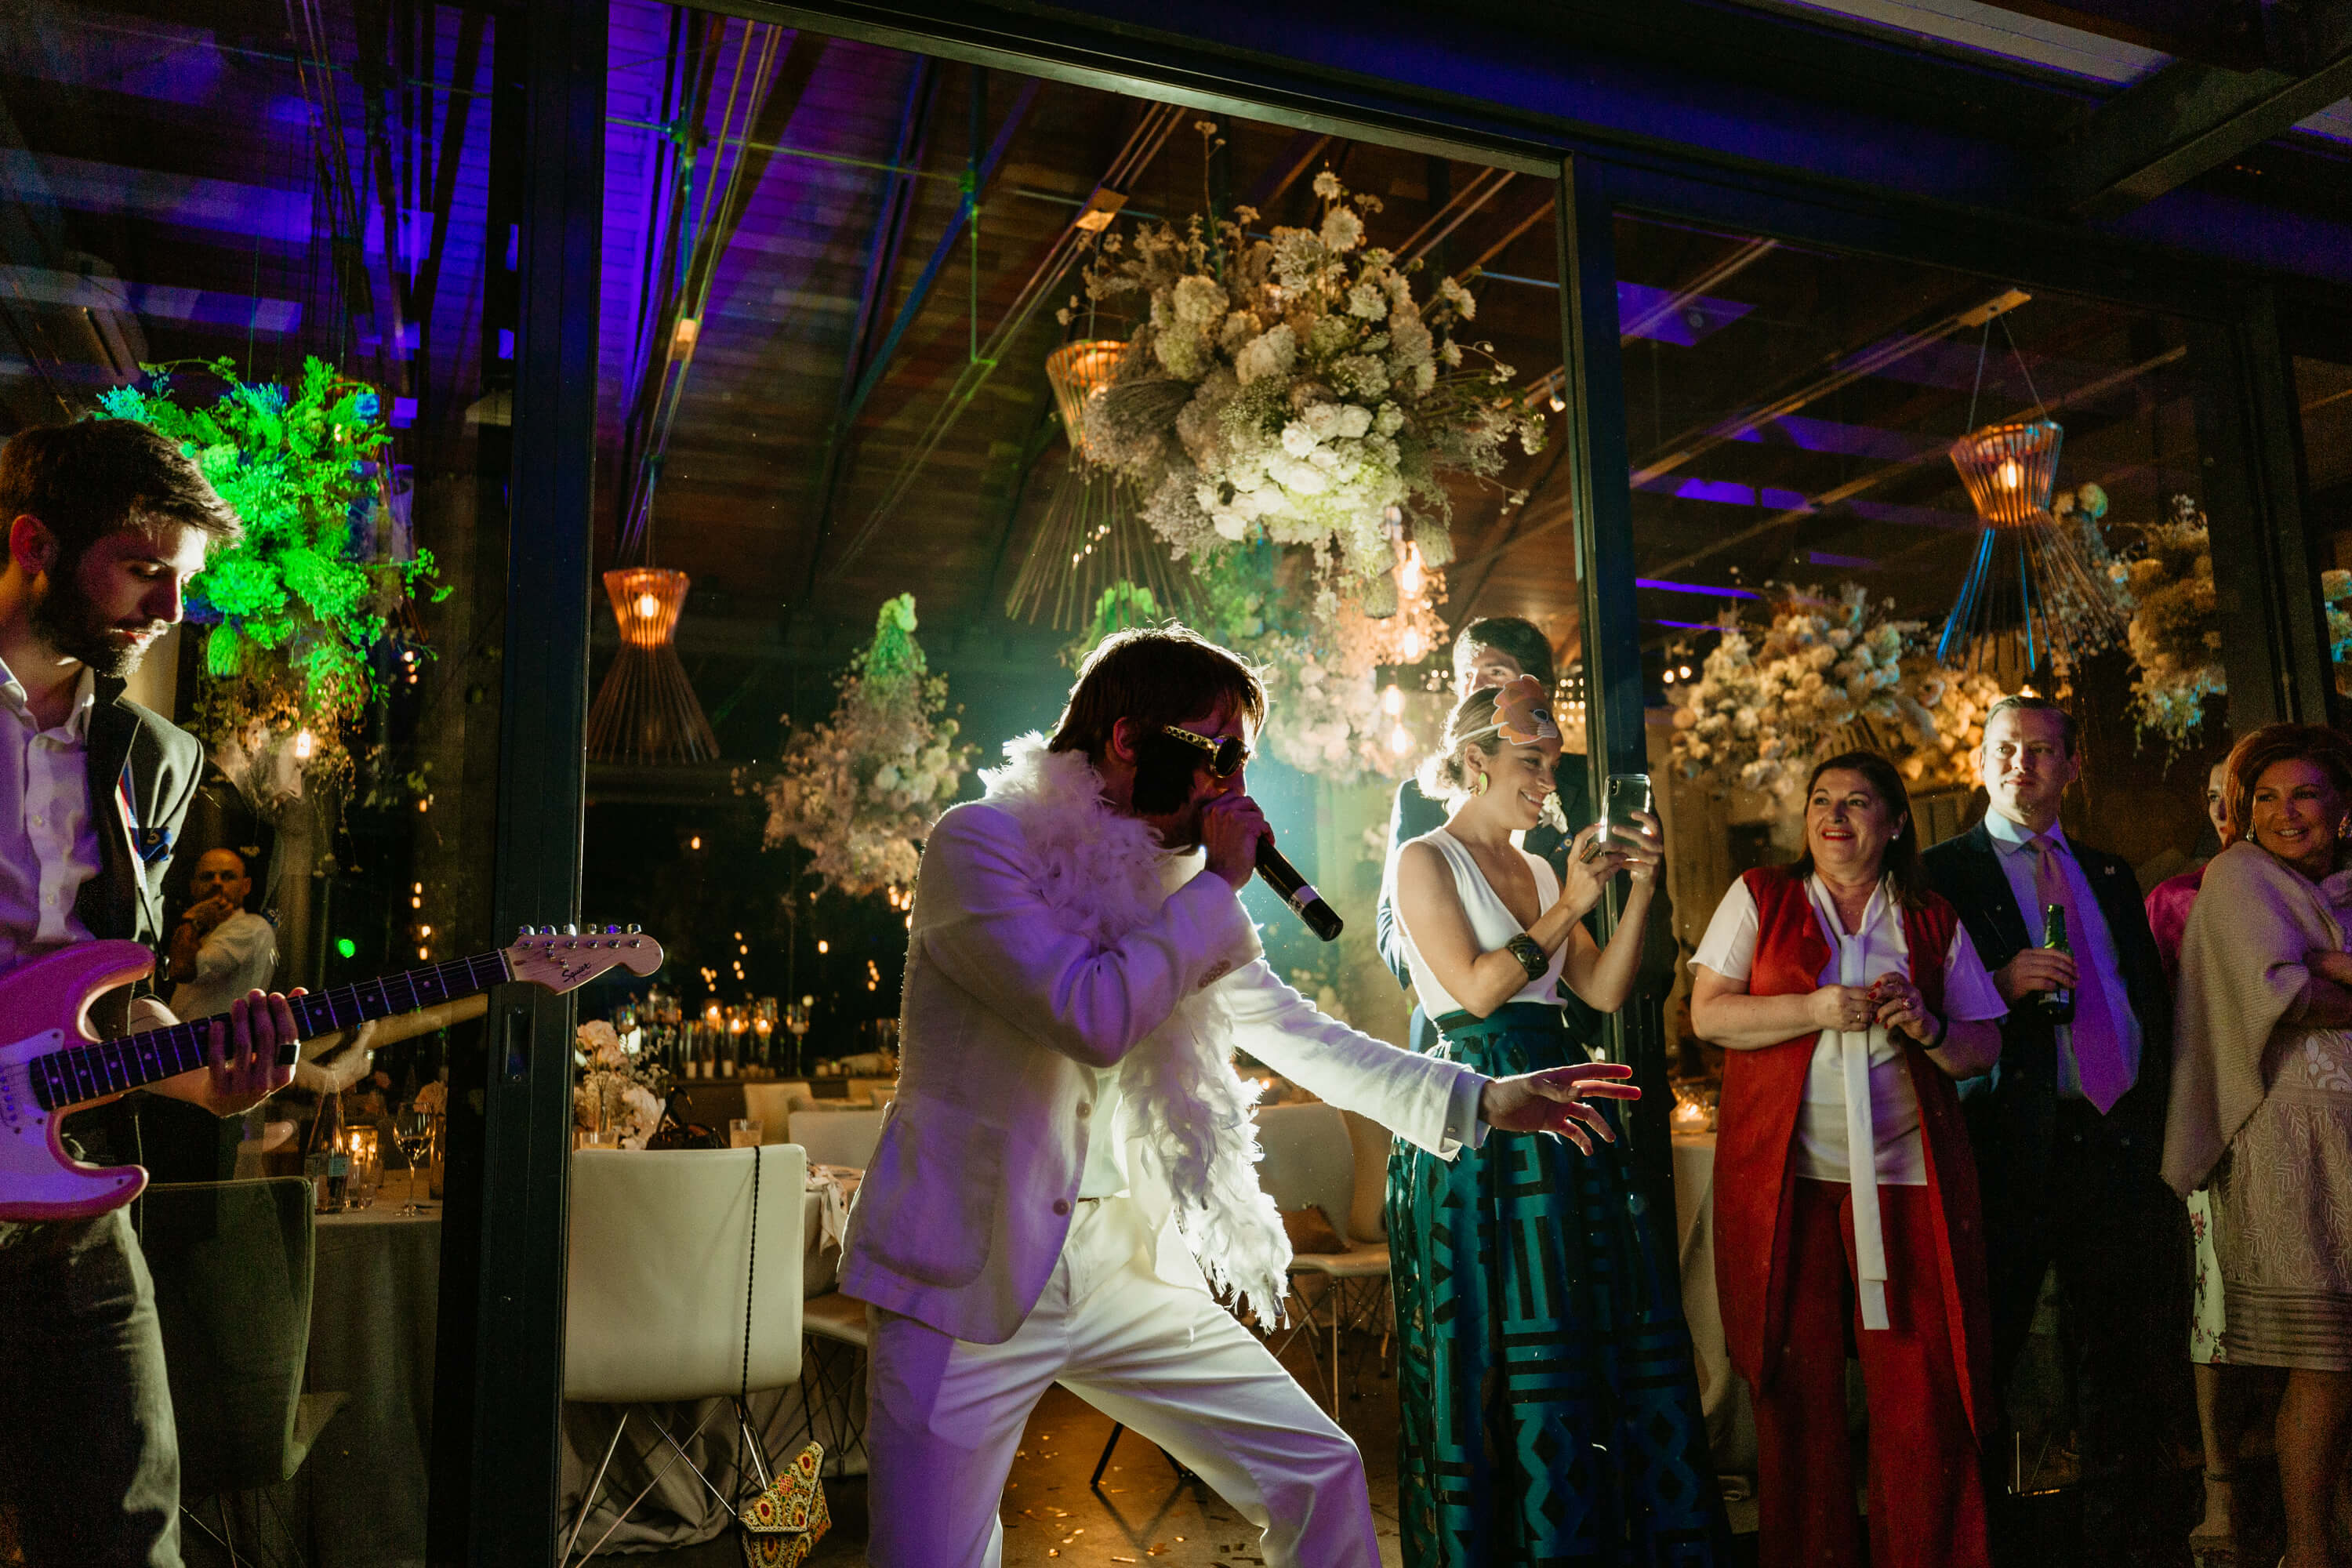 live performance by Elvis impersonator.